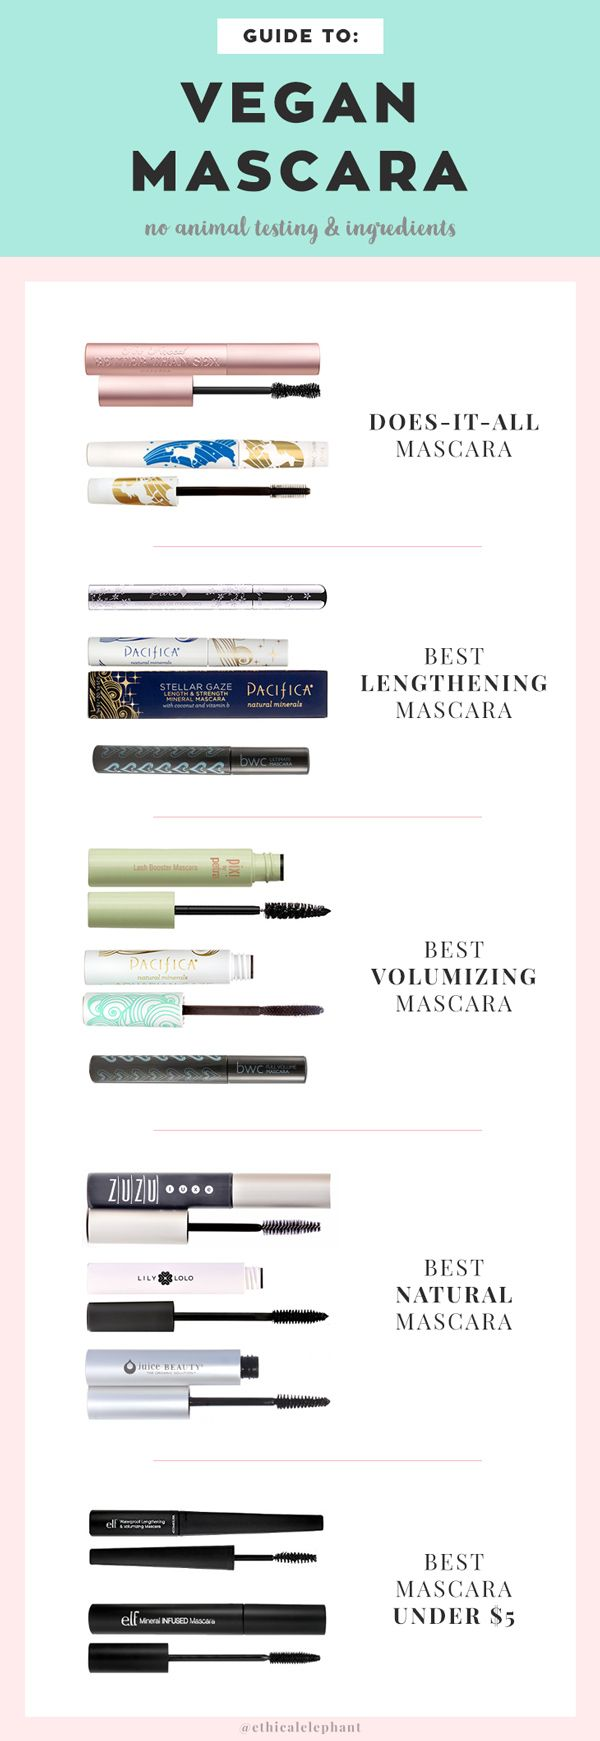 Ultimate Guide to Cruelty-Free and Vegan Mascara (No animal testing and ingredients!).